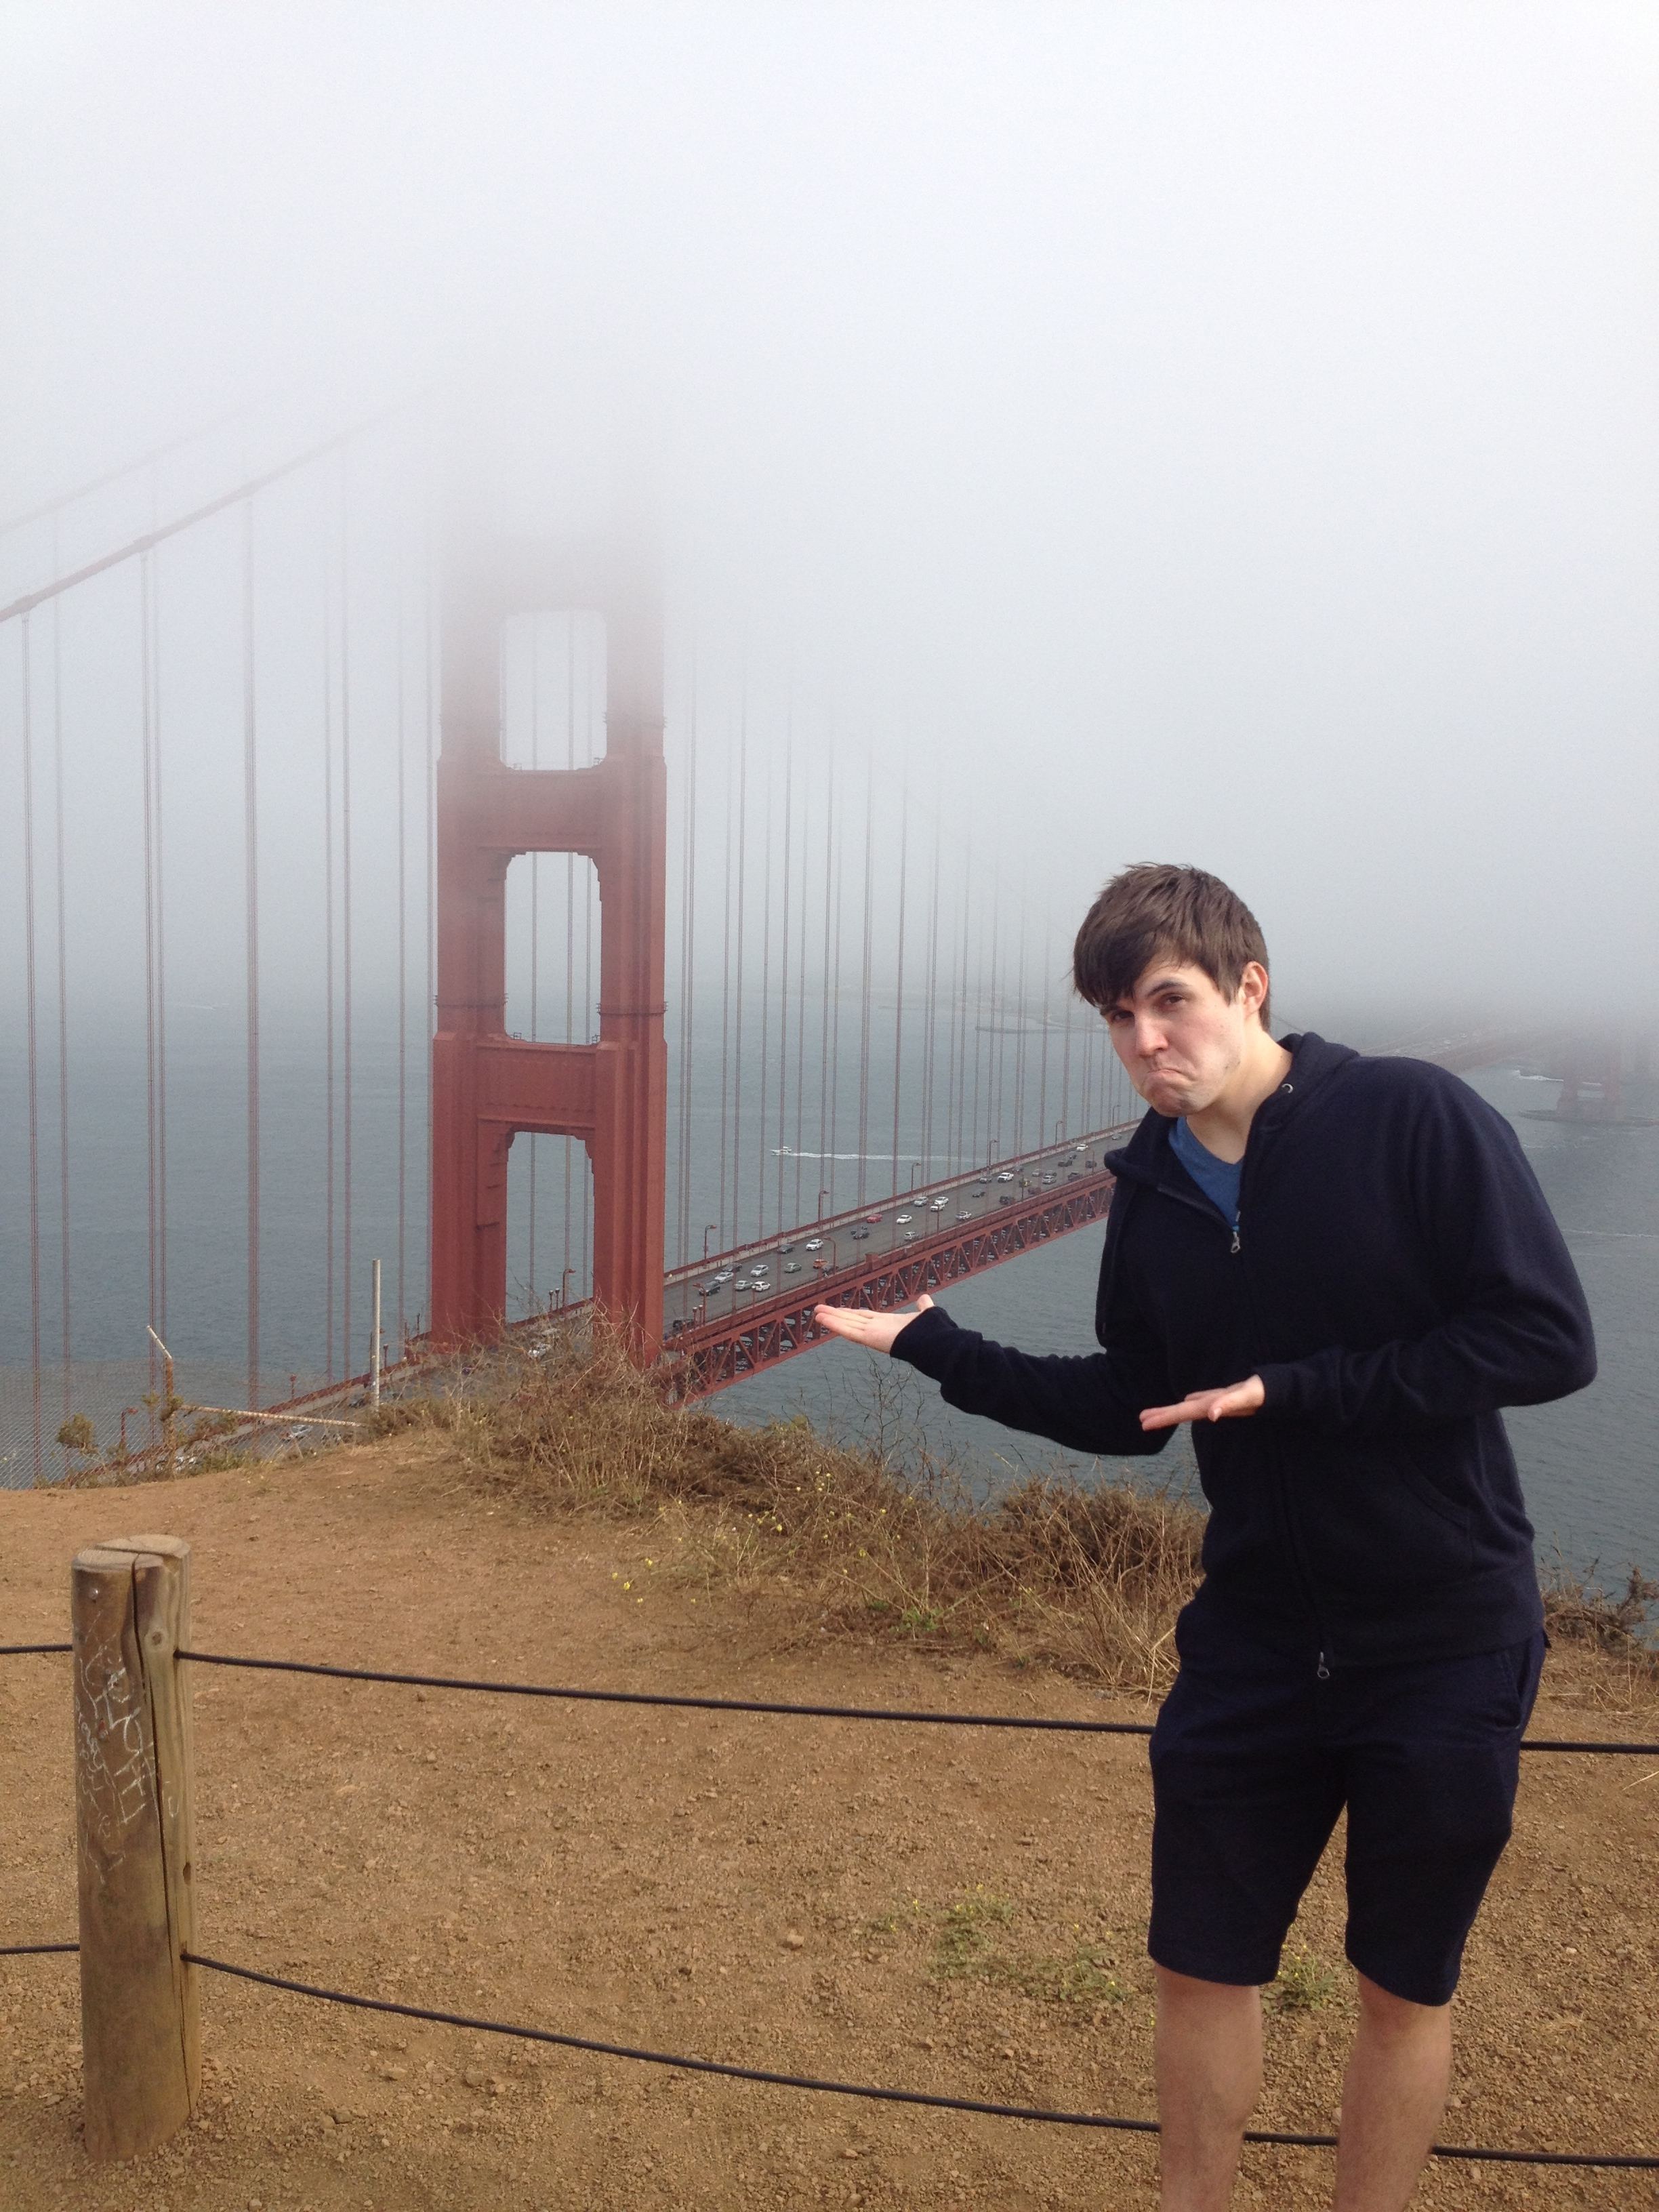 The disappointing Golden Gate bridge